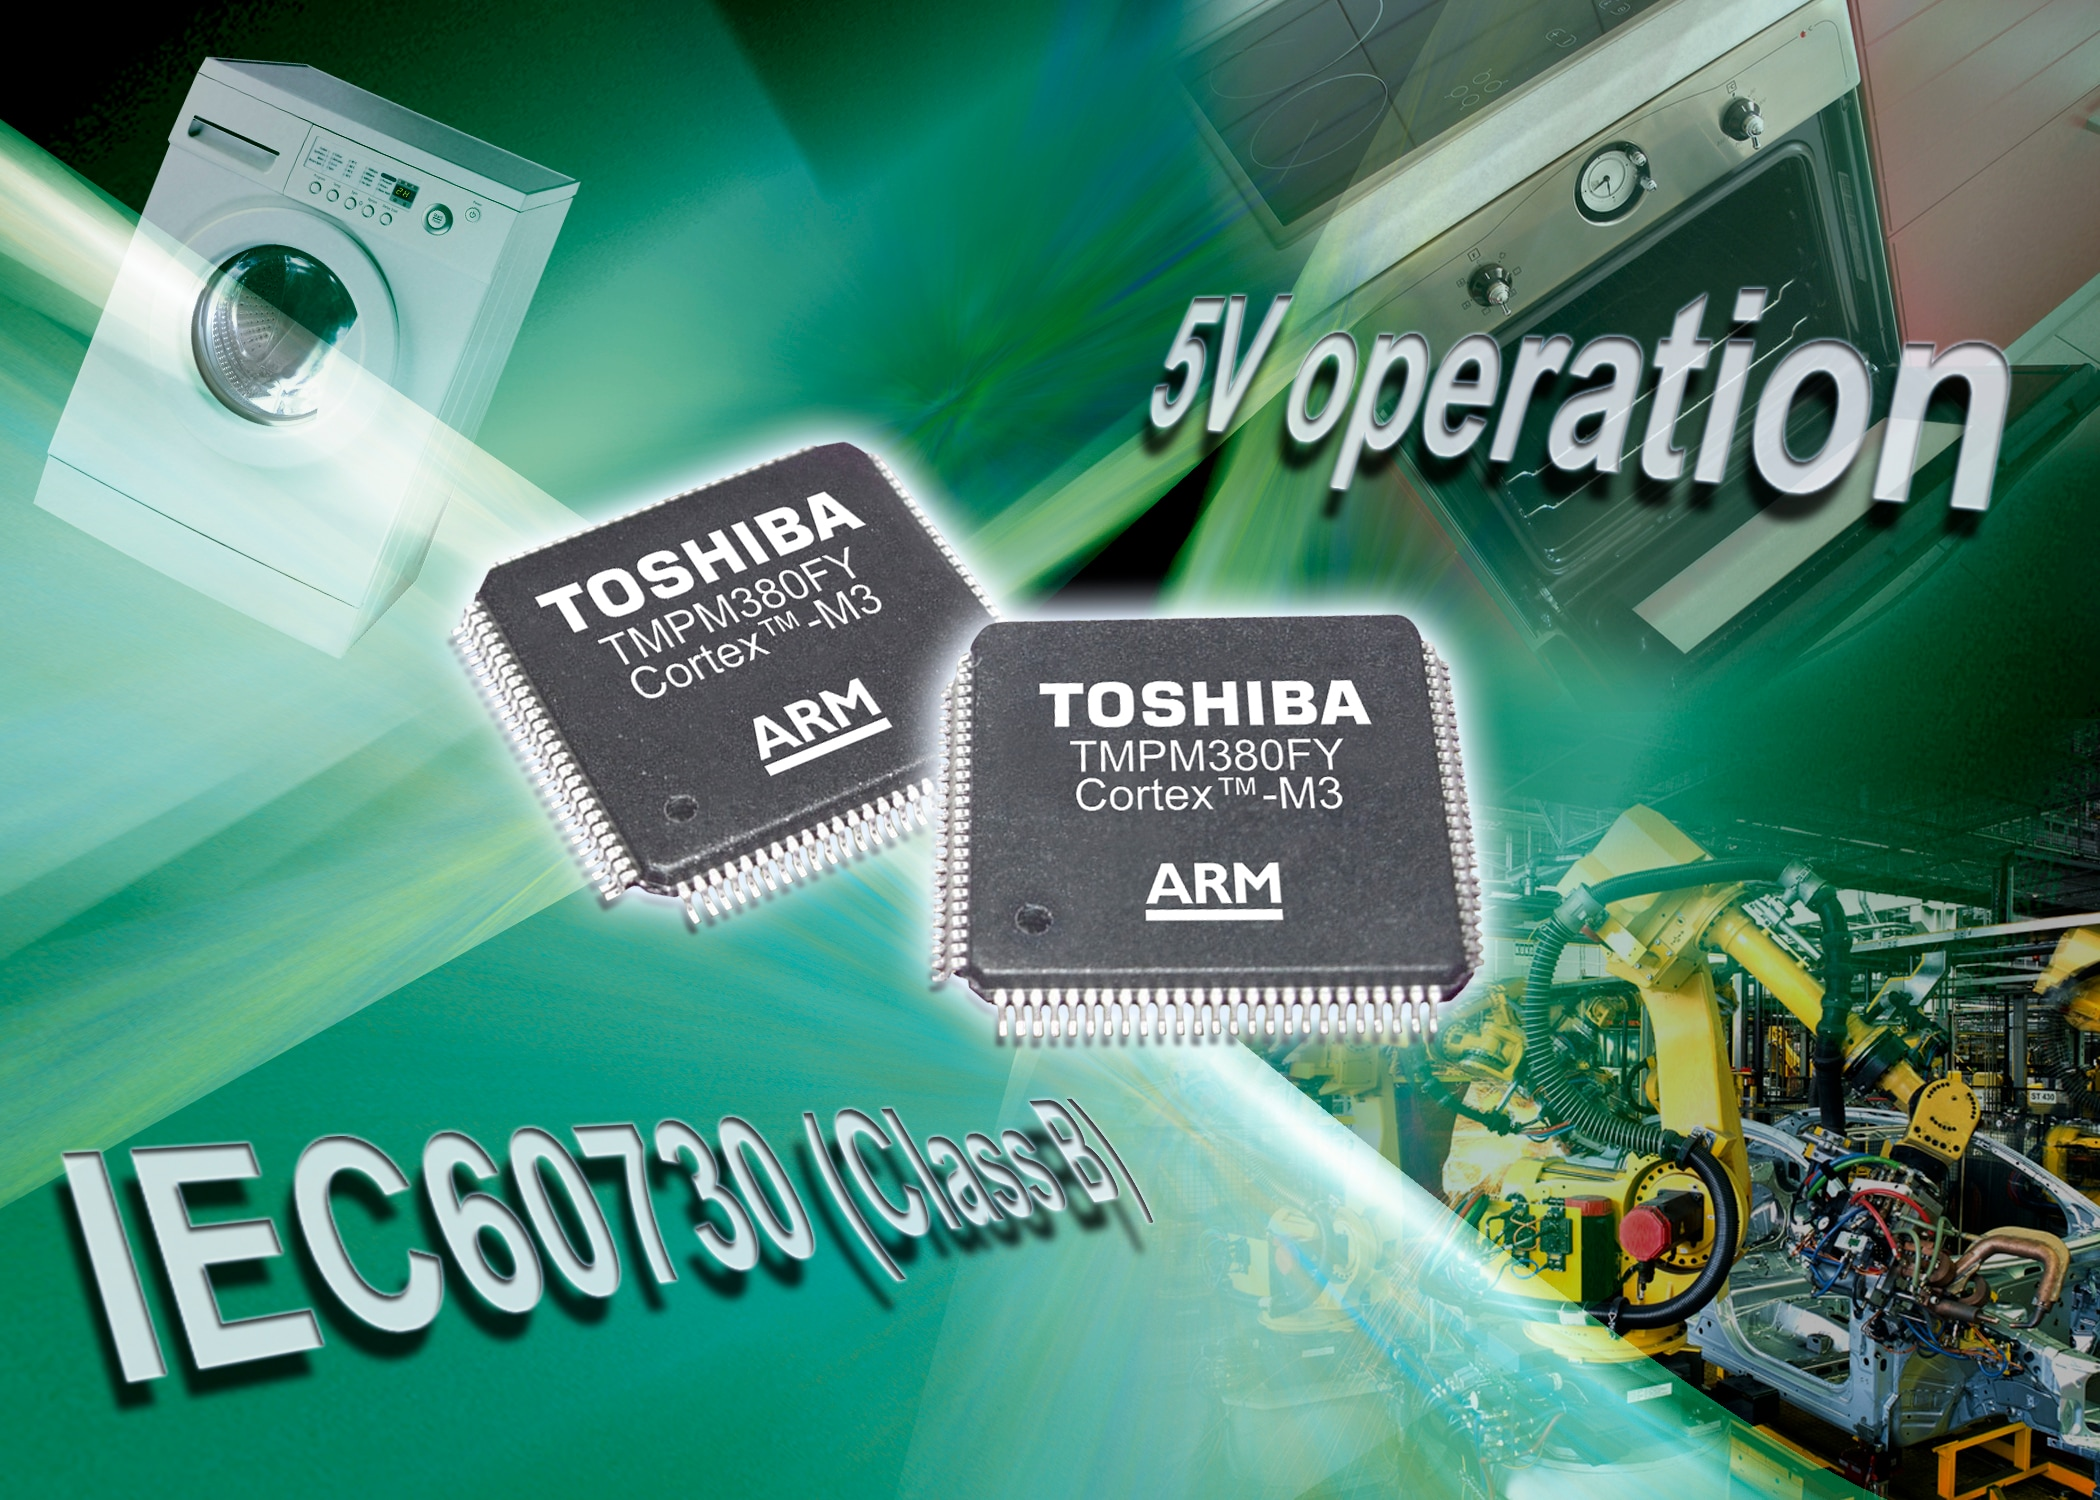 Toshiba Launches 32 Bit Microcontroller For Analog Circuit Control Digital Power Mcu Leader That Collaborates With Technology Companies To Create Breakthrough Designs Today Announced Availability Of A New